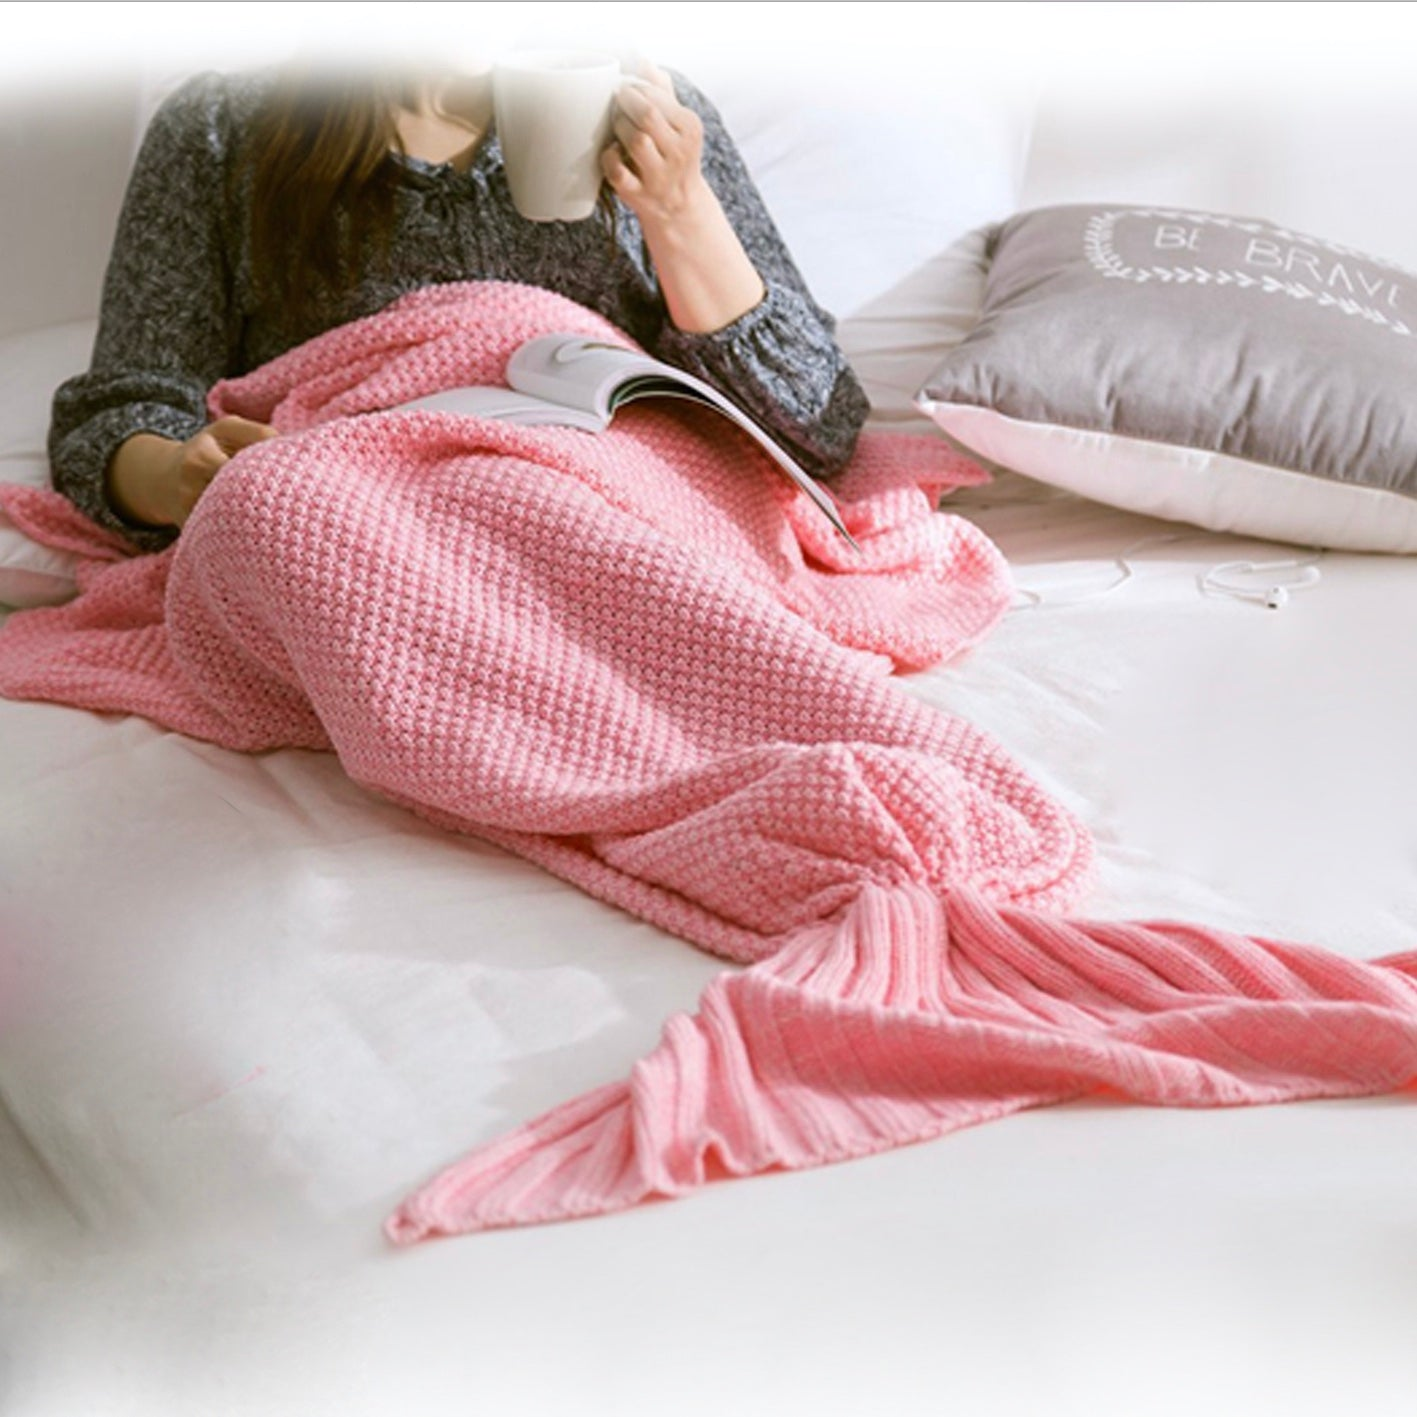 Mermaid Blanket Youth - Pink